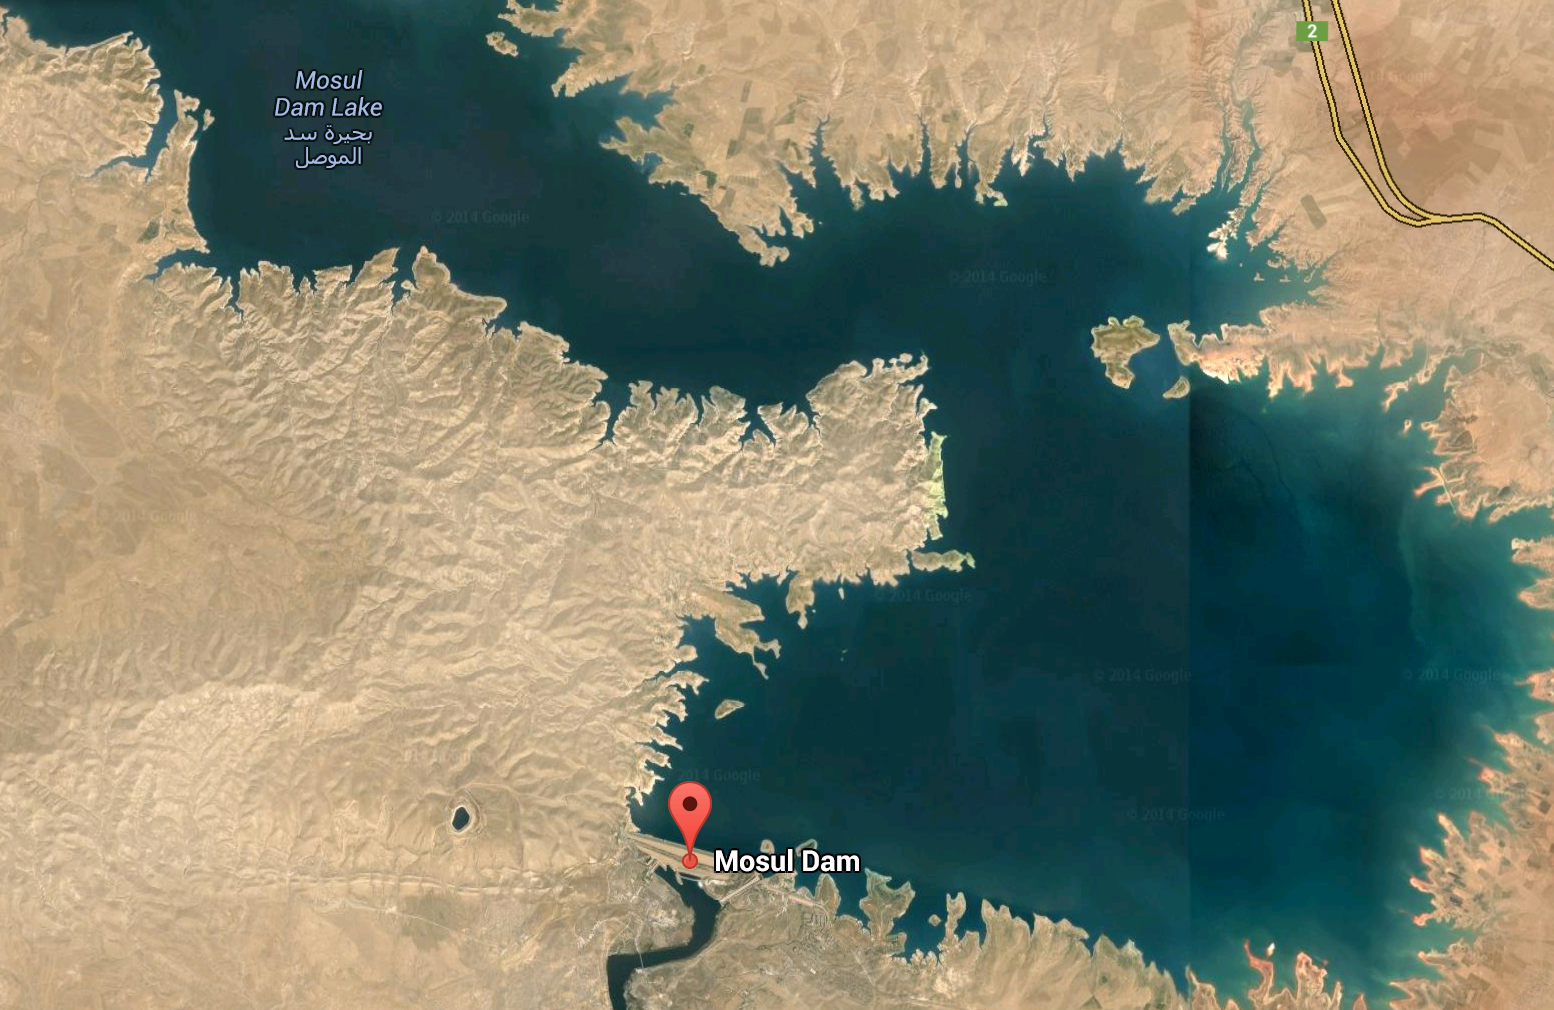 Google Map of Mosul Dam and reservoir north of the city of Mosul.